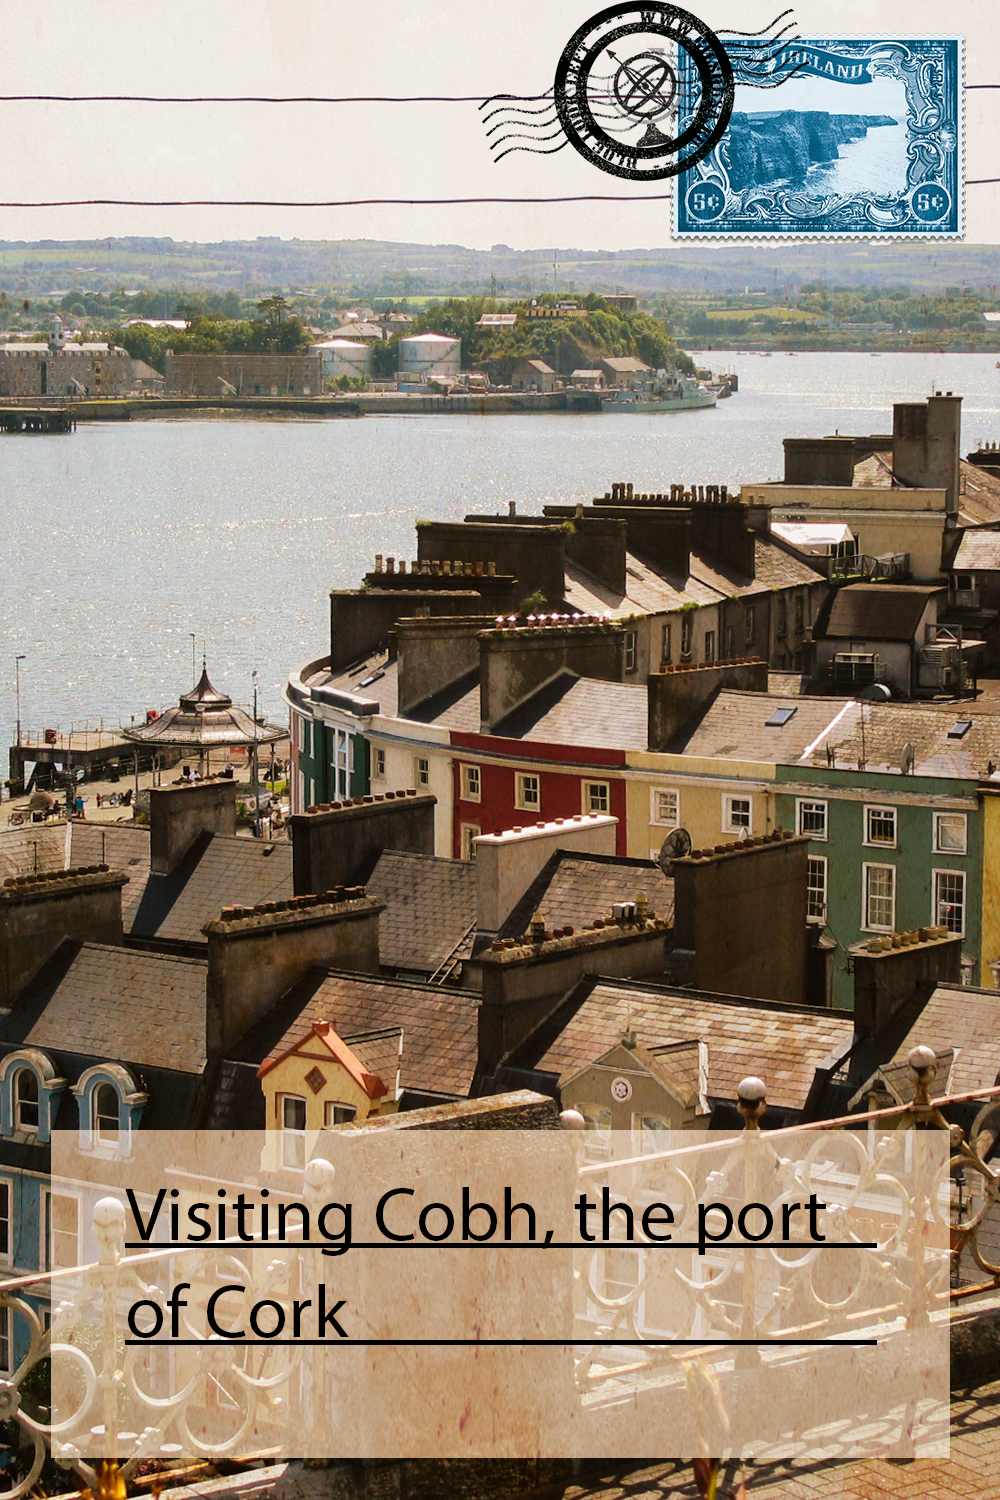 Visiting Cobh, the port of Cork